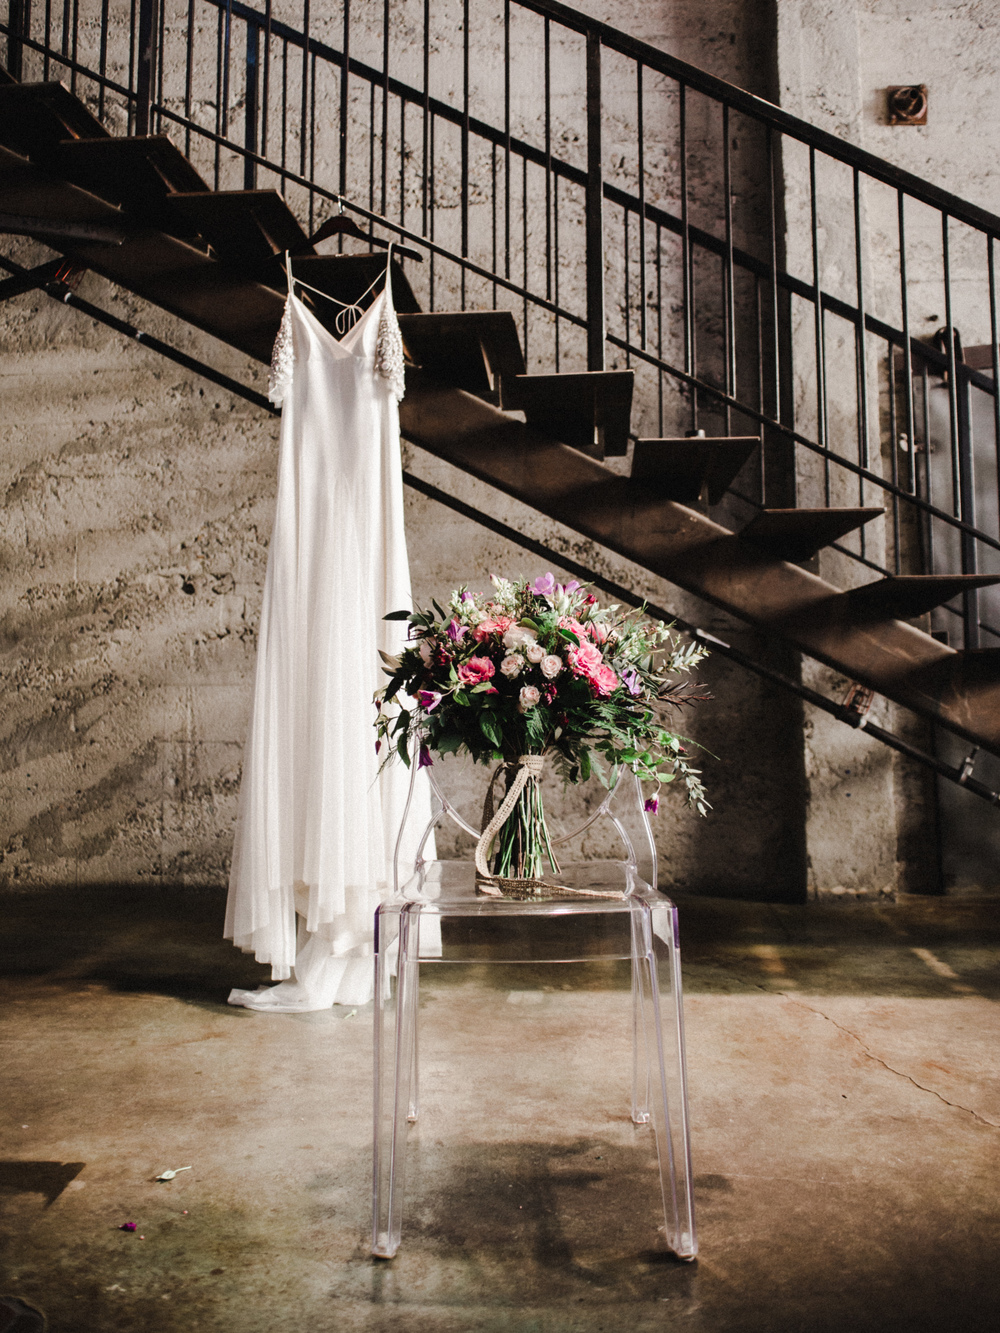 MeghanElise Photography - Luce Loft Wedding Inspiration - 7M8A4881.jpg